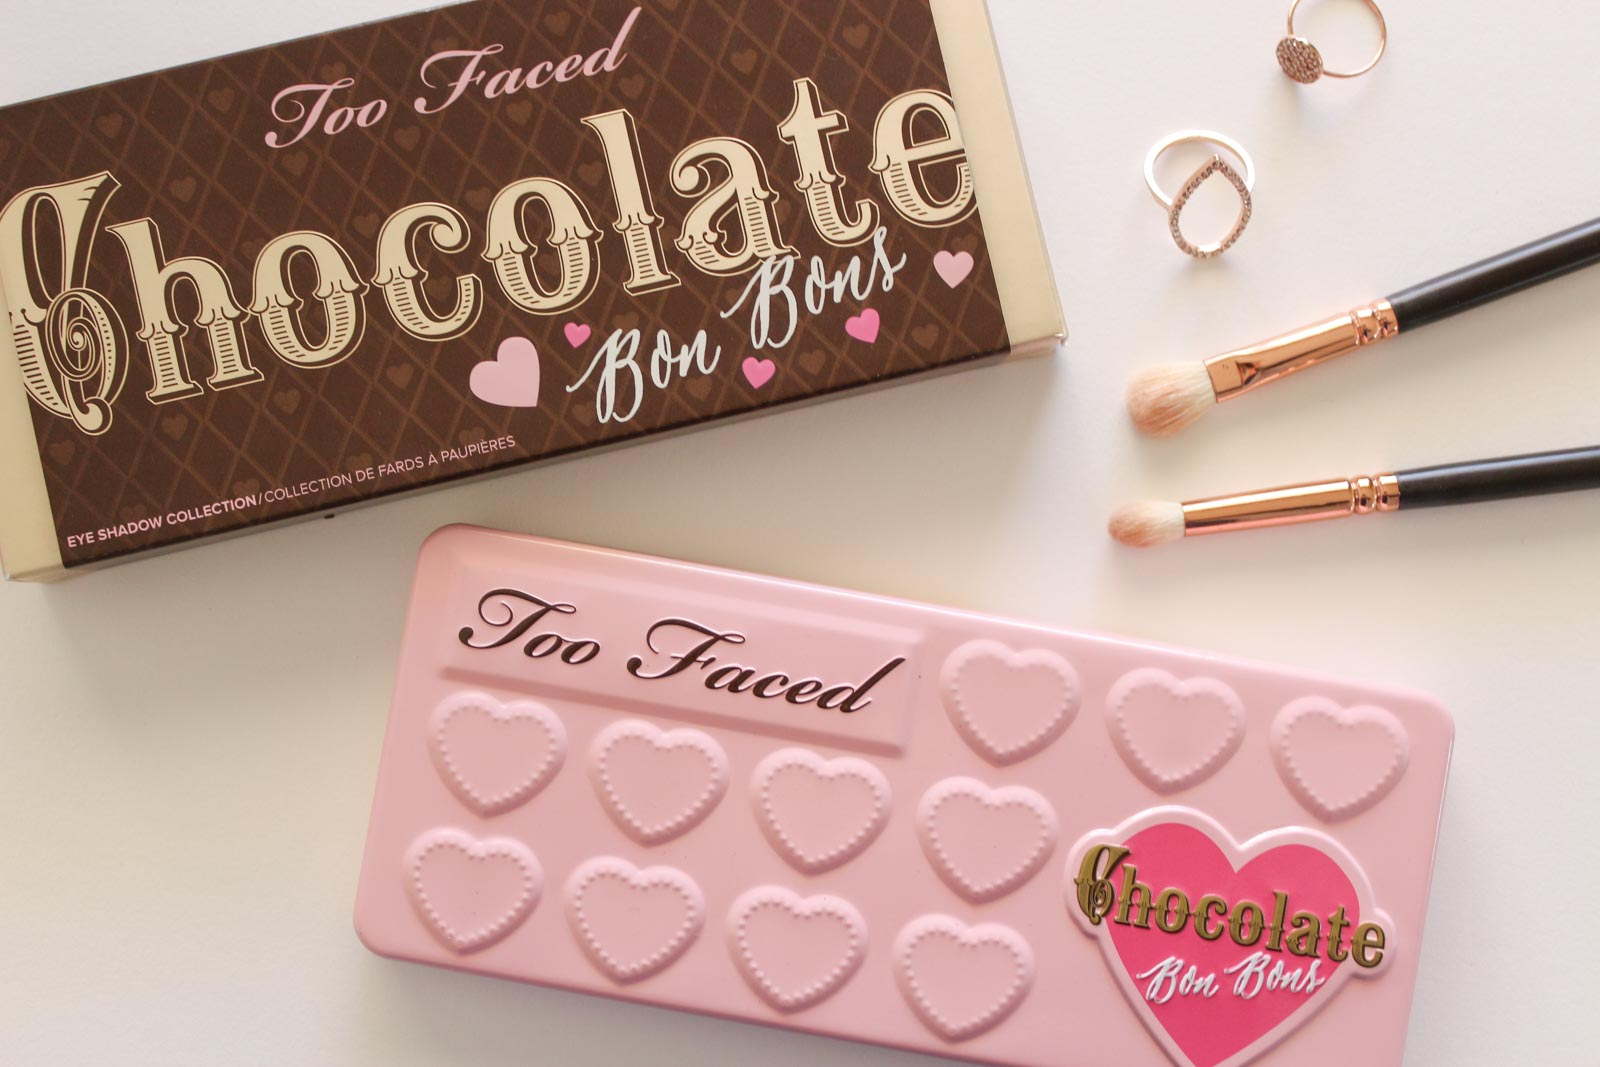 Too Faced Chocolate Bon Bons Palette With Swatches | Cate Renée